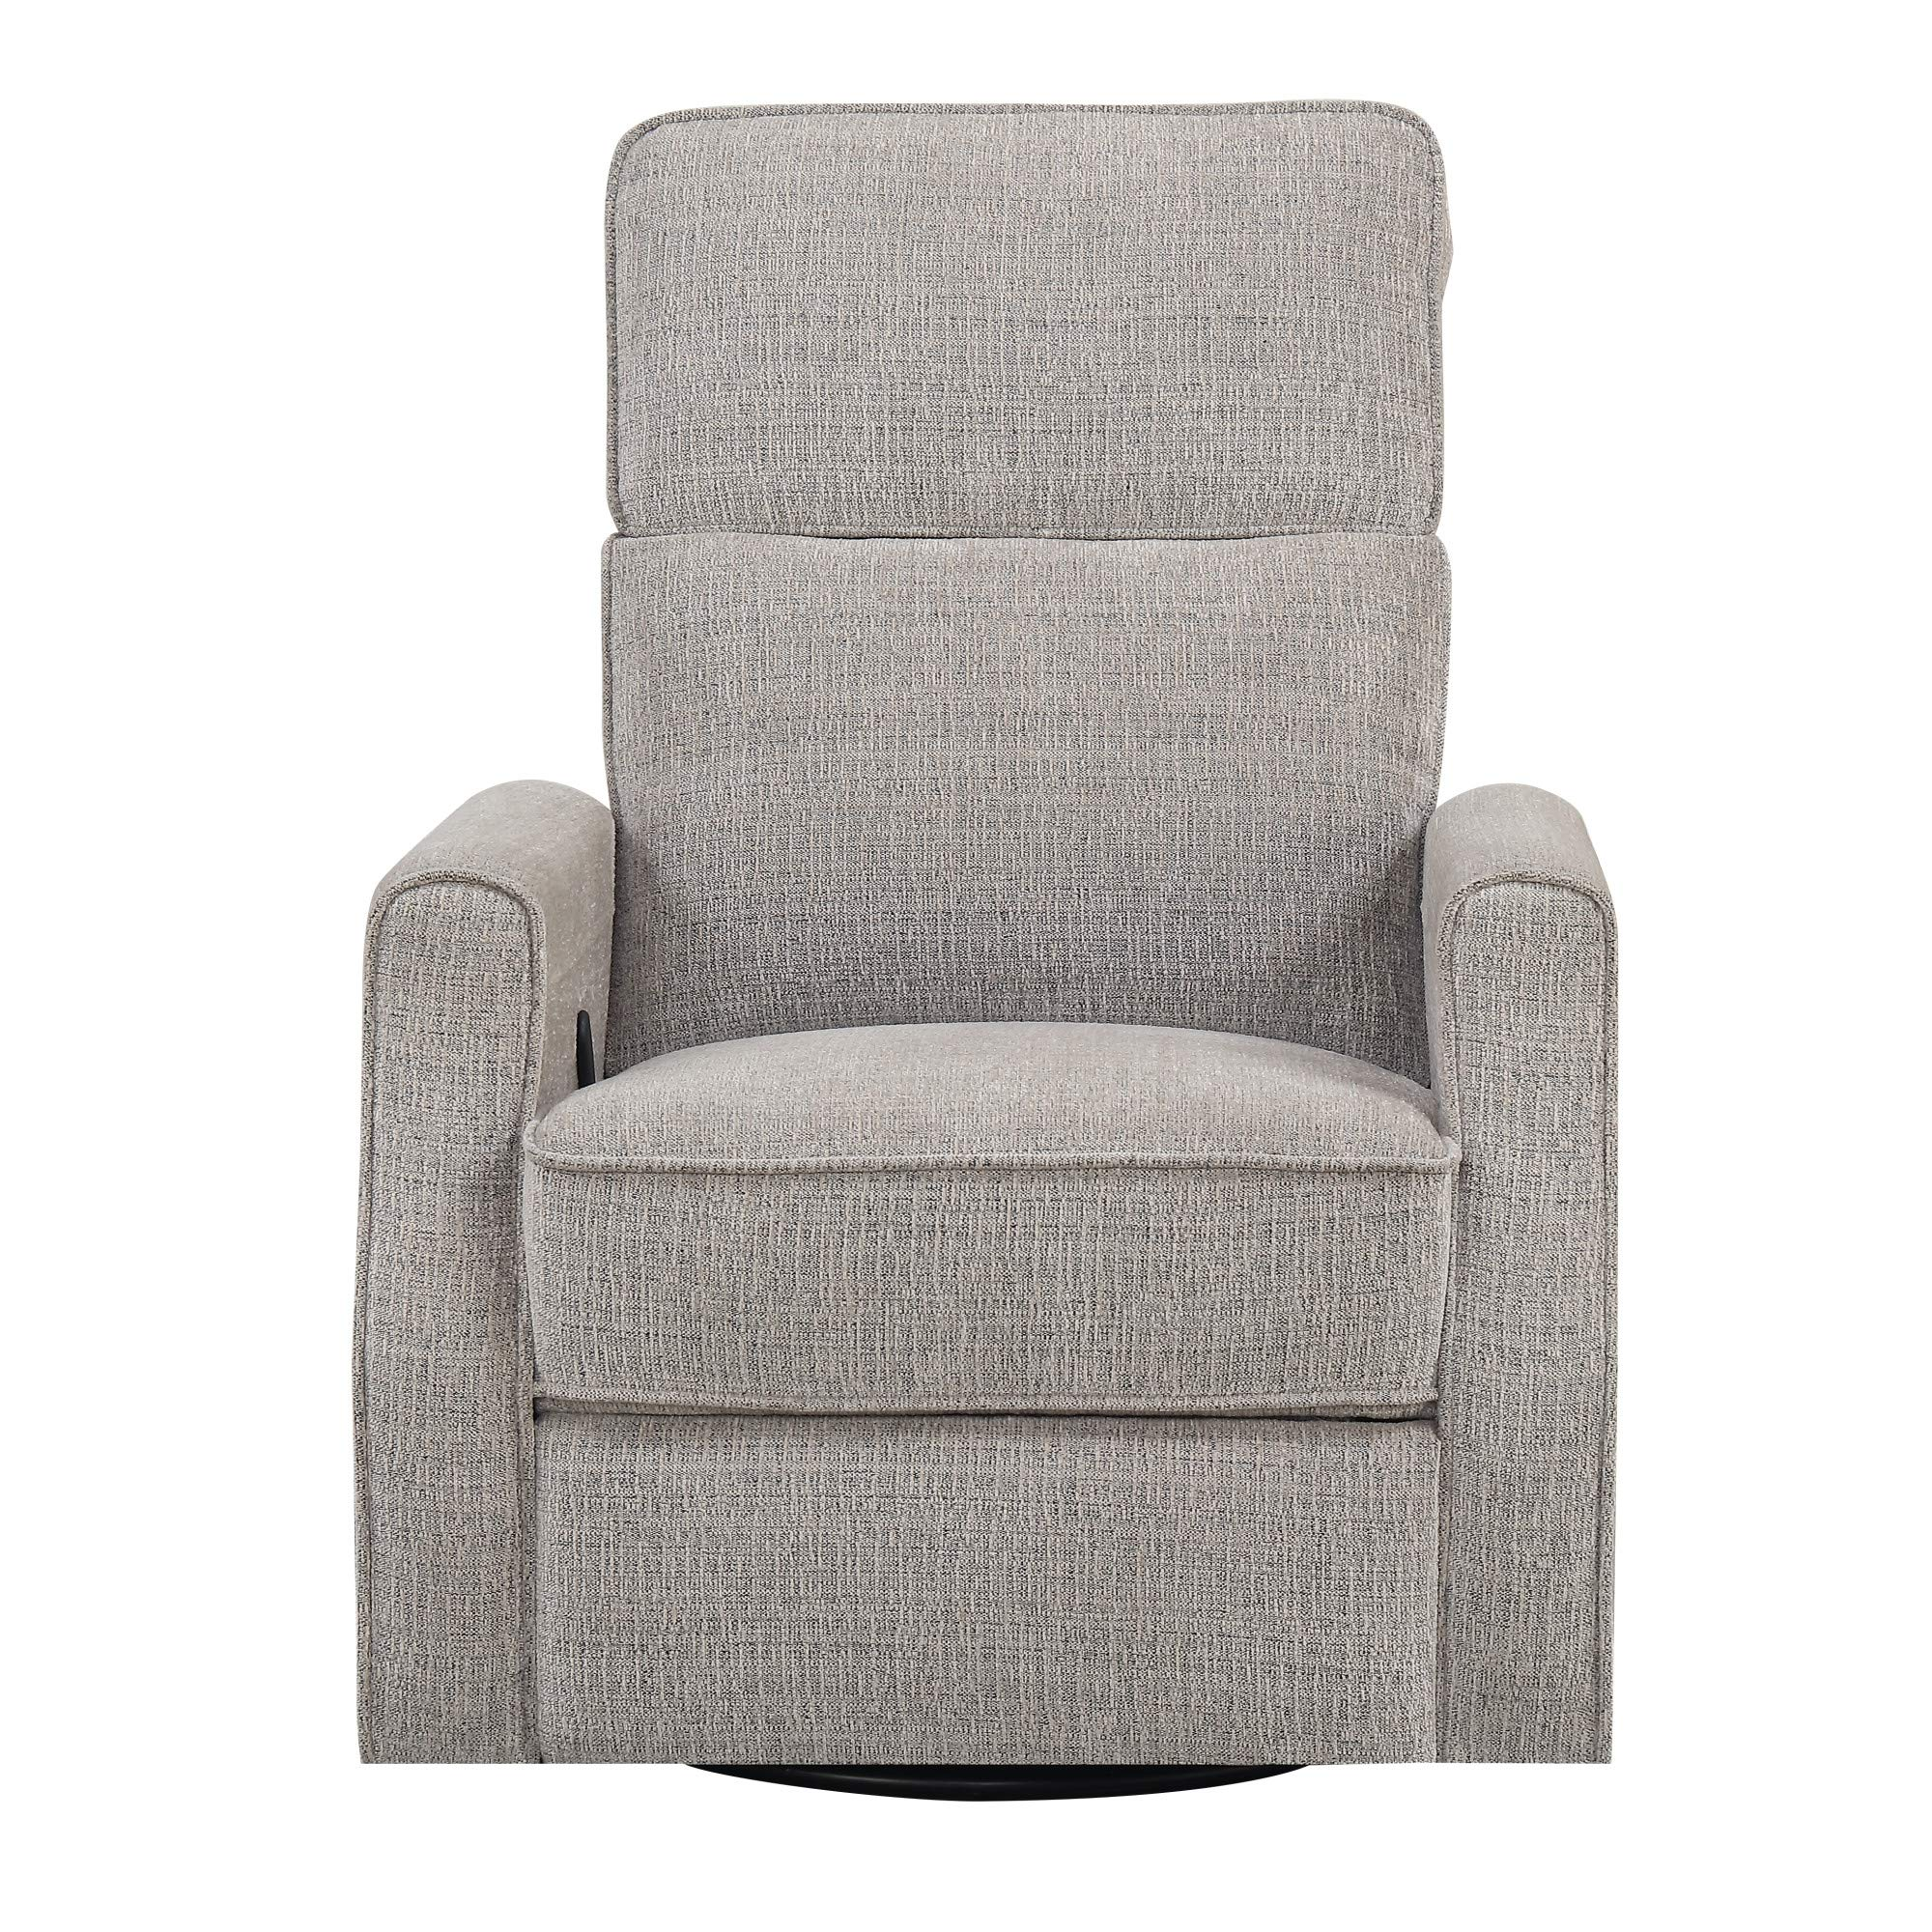 Manchester Swivel Reclining Glider in Shoreline with Swivel, Glider, And Reclining Functions, by Artum Hill by Artum Hill